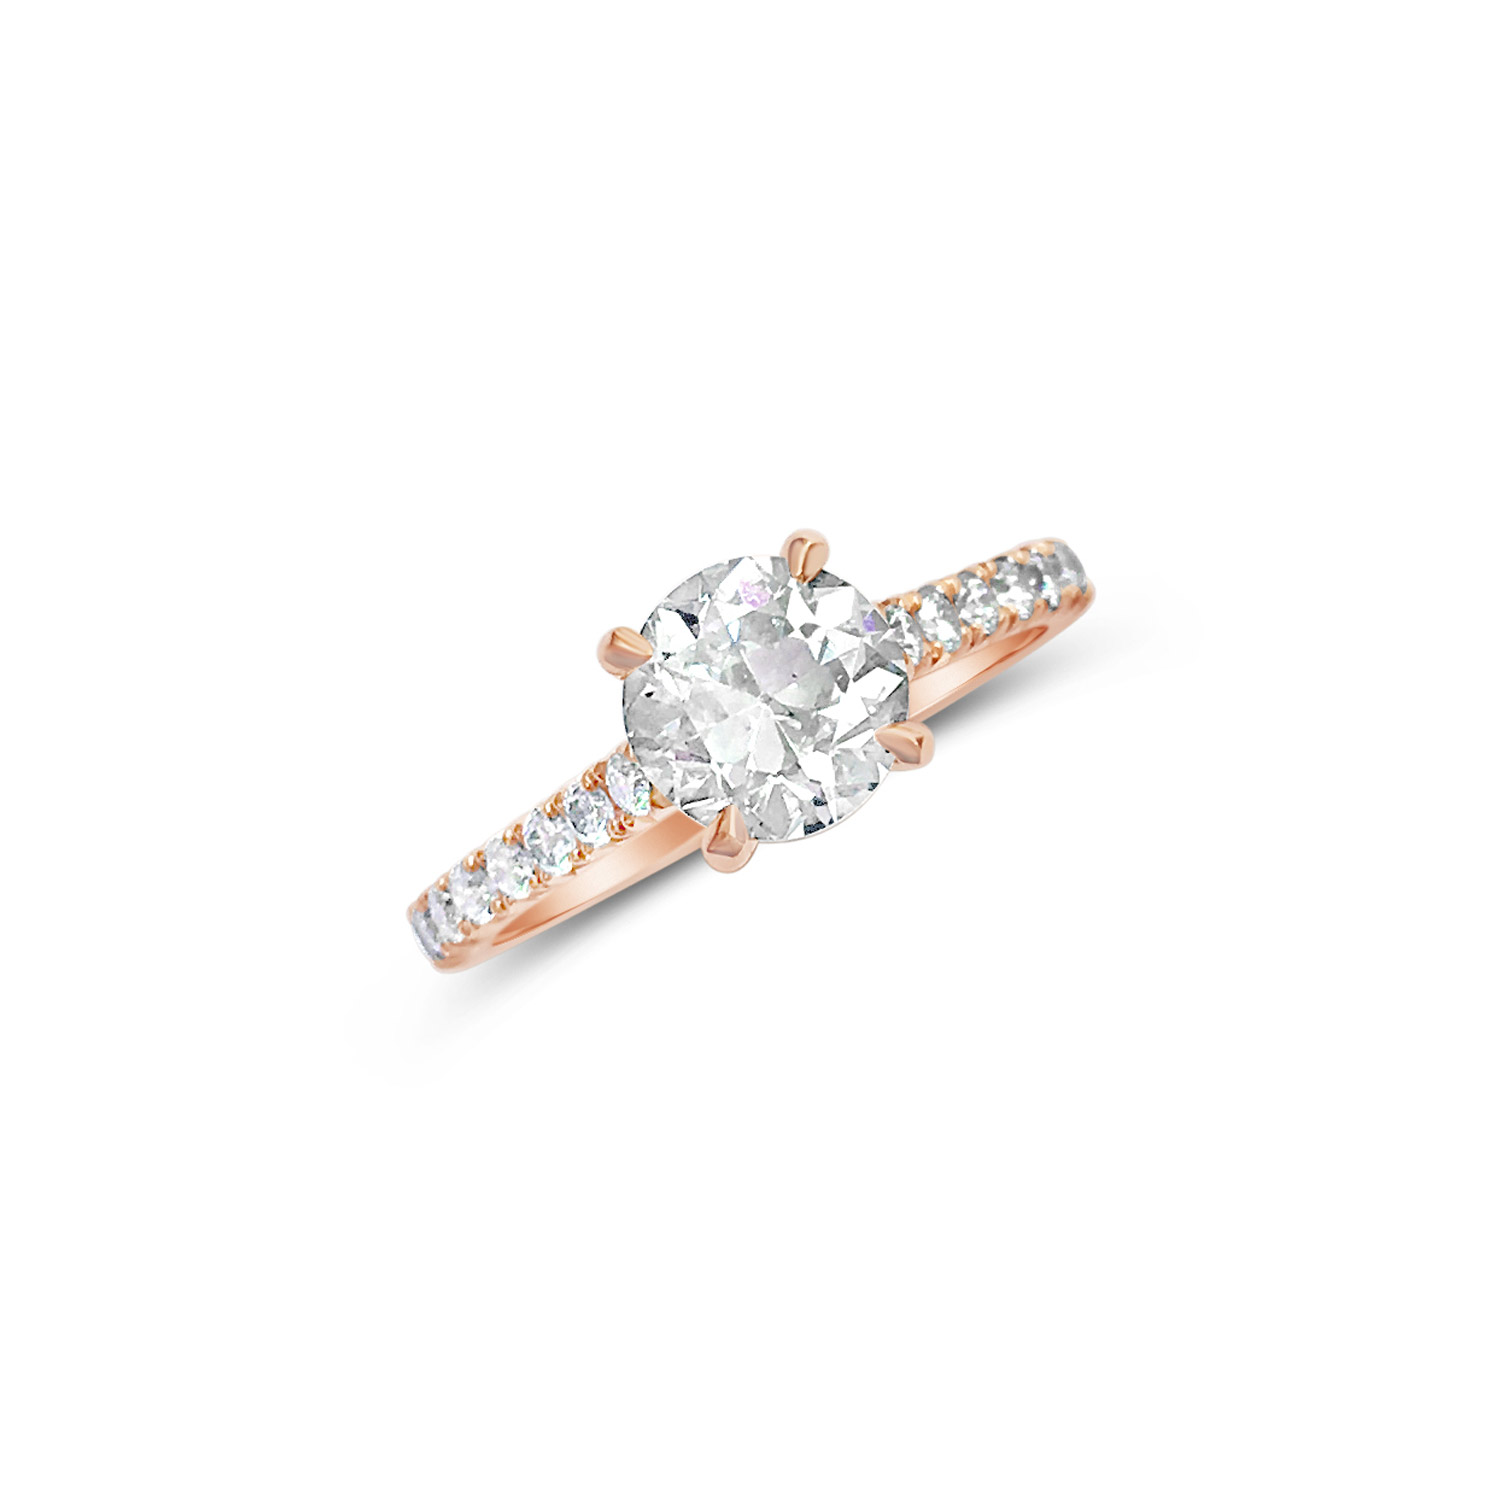 Bespoke diamond solitaire ring with four talon-shaped claws and diamond  fishtail half-set band, mounted in 18ct rose gold top